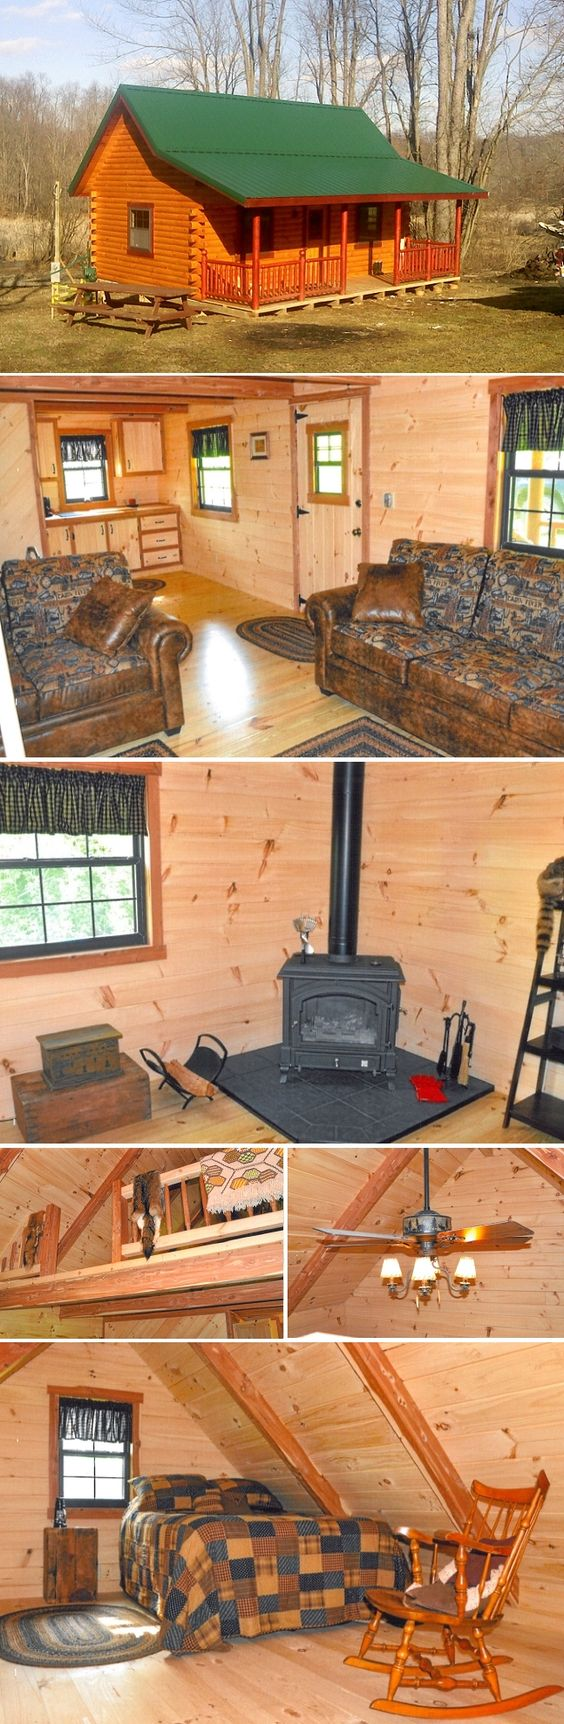 Guest houses ohio and cabin on pinterest for 14x24 cabin plans